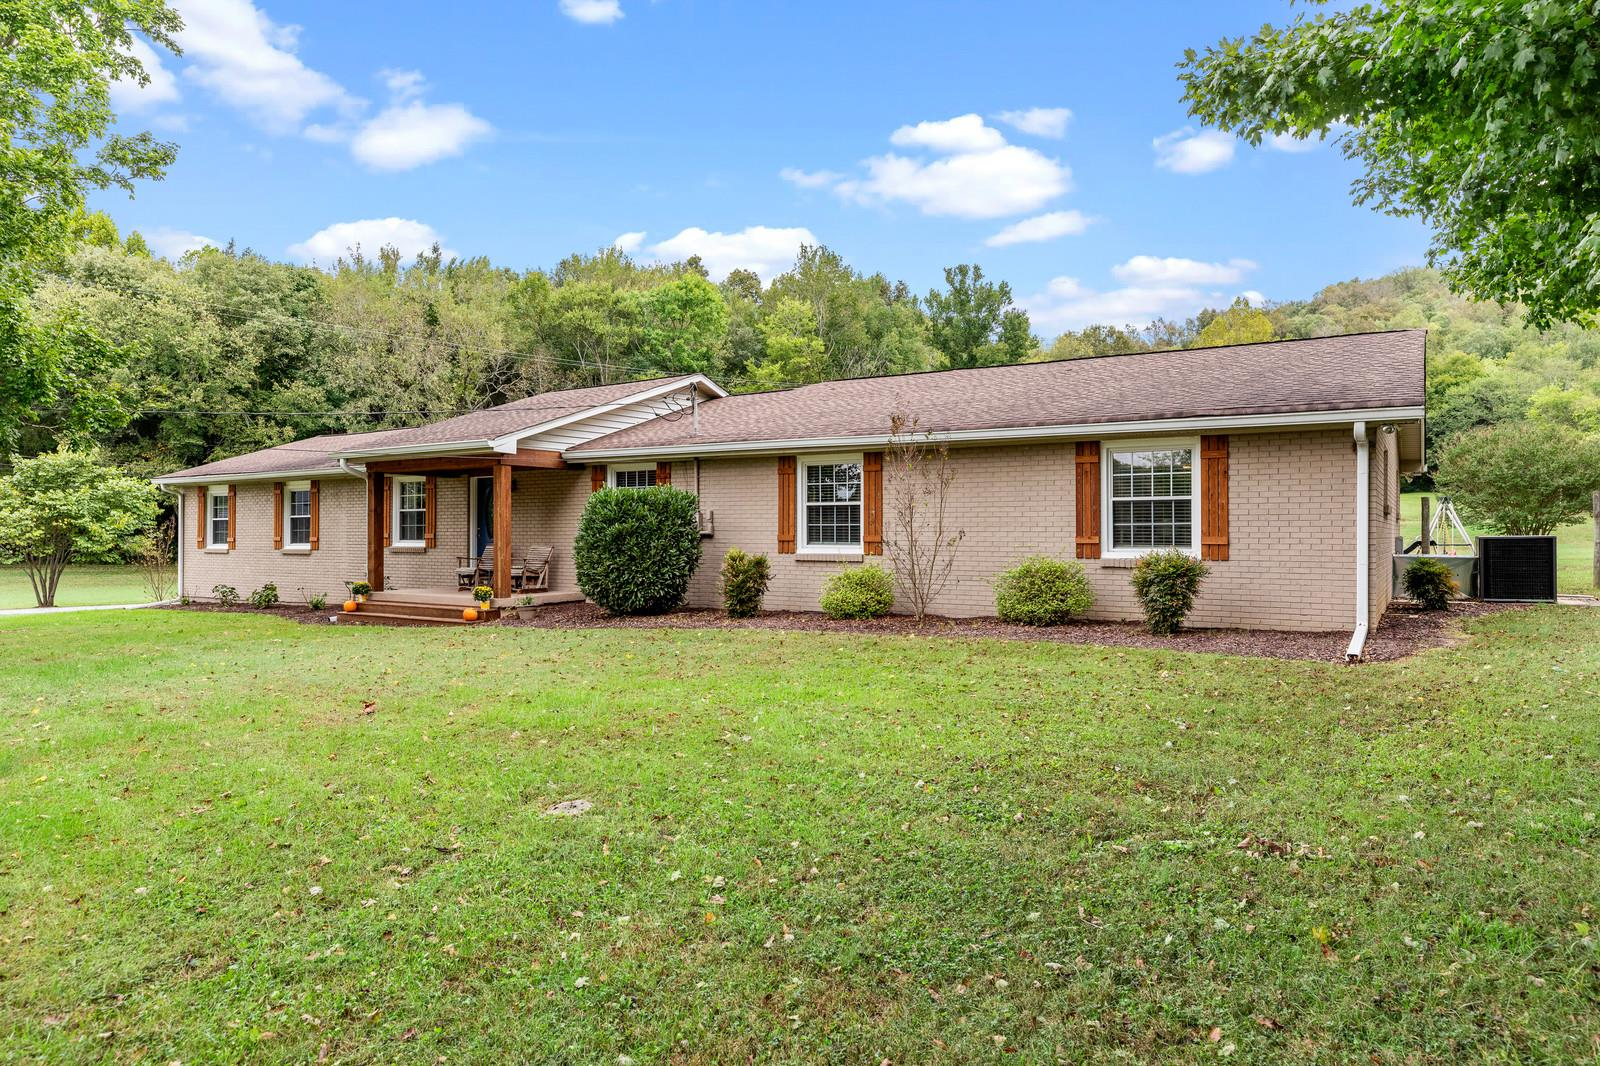 9547 S Harpeth Rd, Bellevue in Davidson County County, TN 37221 Home for Sale